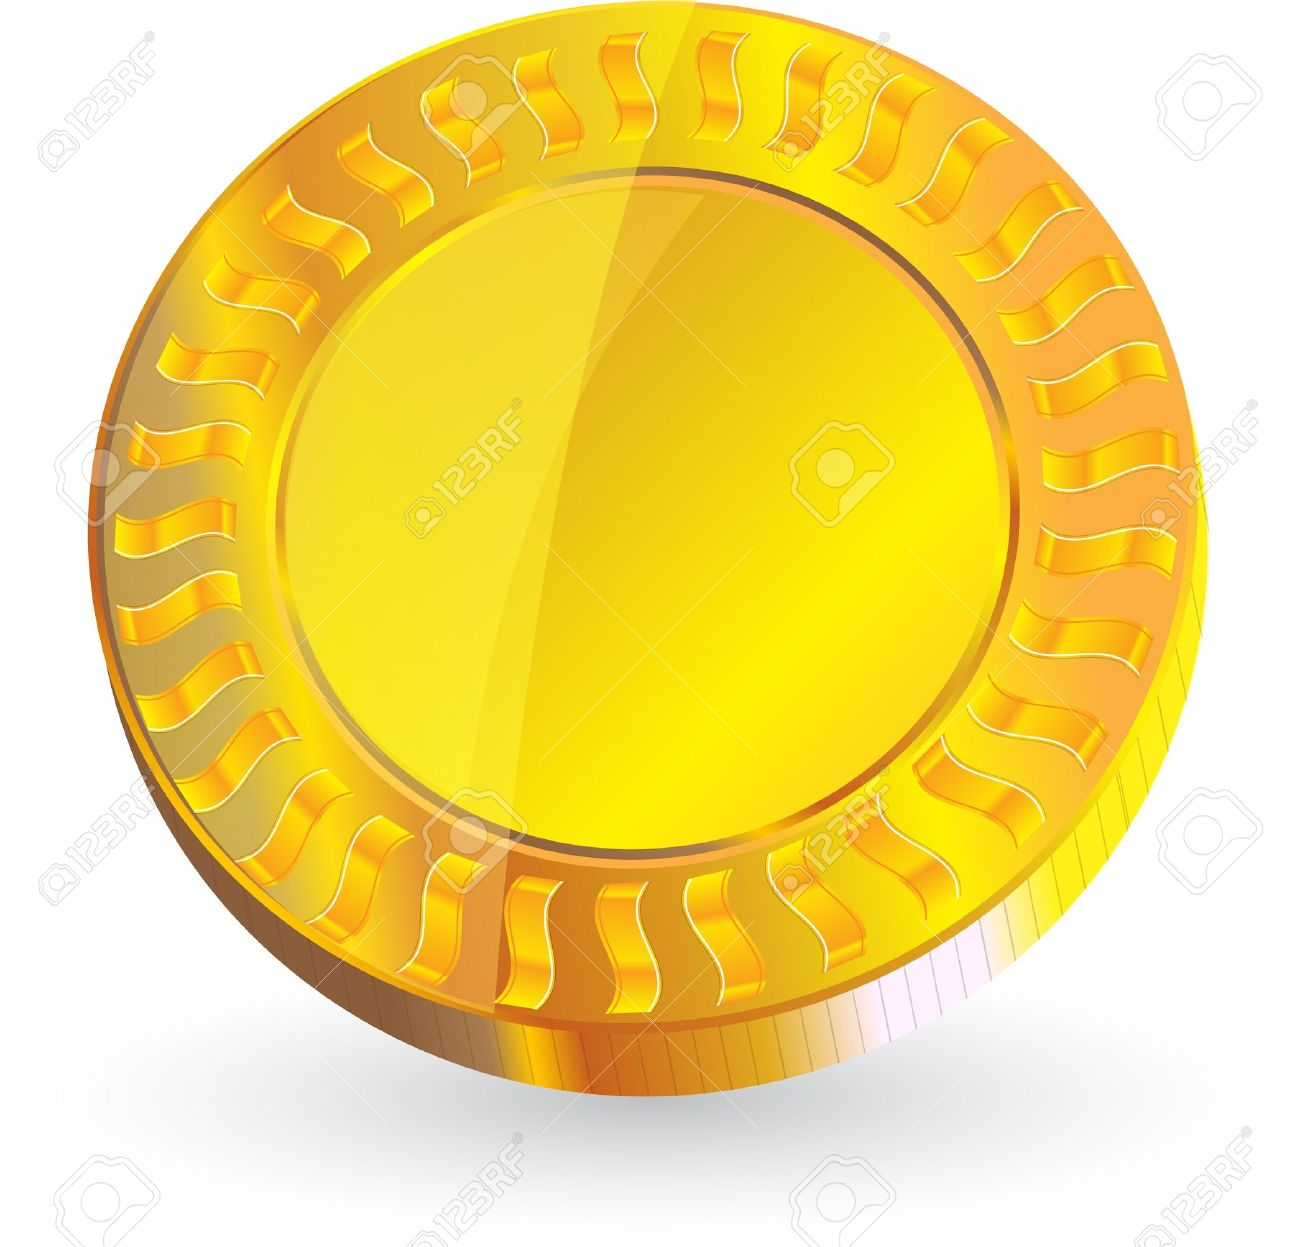 Gold Coin Isolated On White Background Vector Format Royalty Free.